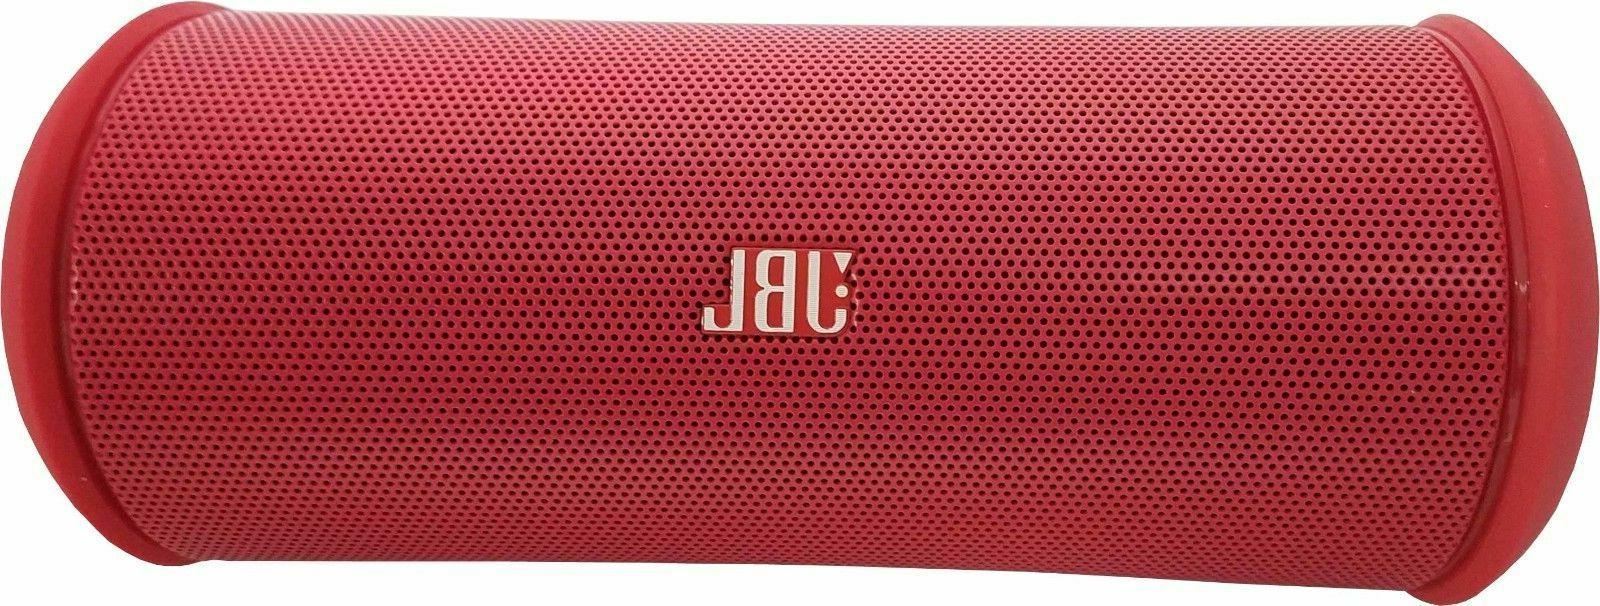 JBL Portable Wireless Speaker NFC Harman Kardon New